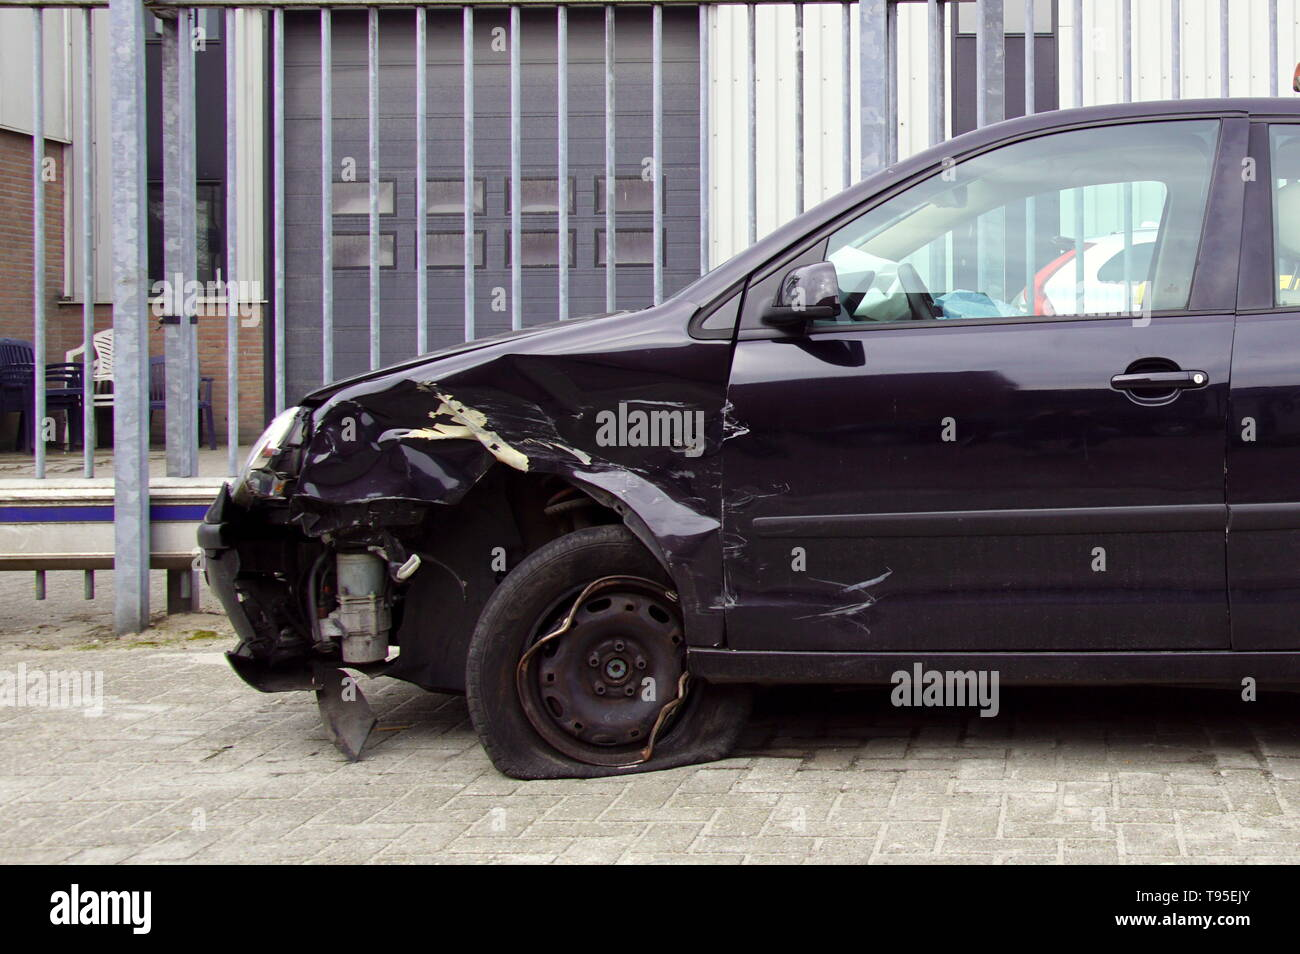 Naarden, the Netherlands - March 25, 2018: Volkswagen Polo with accident damage parked by the side of the road. Nobody in the vehicle. - Stock Image